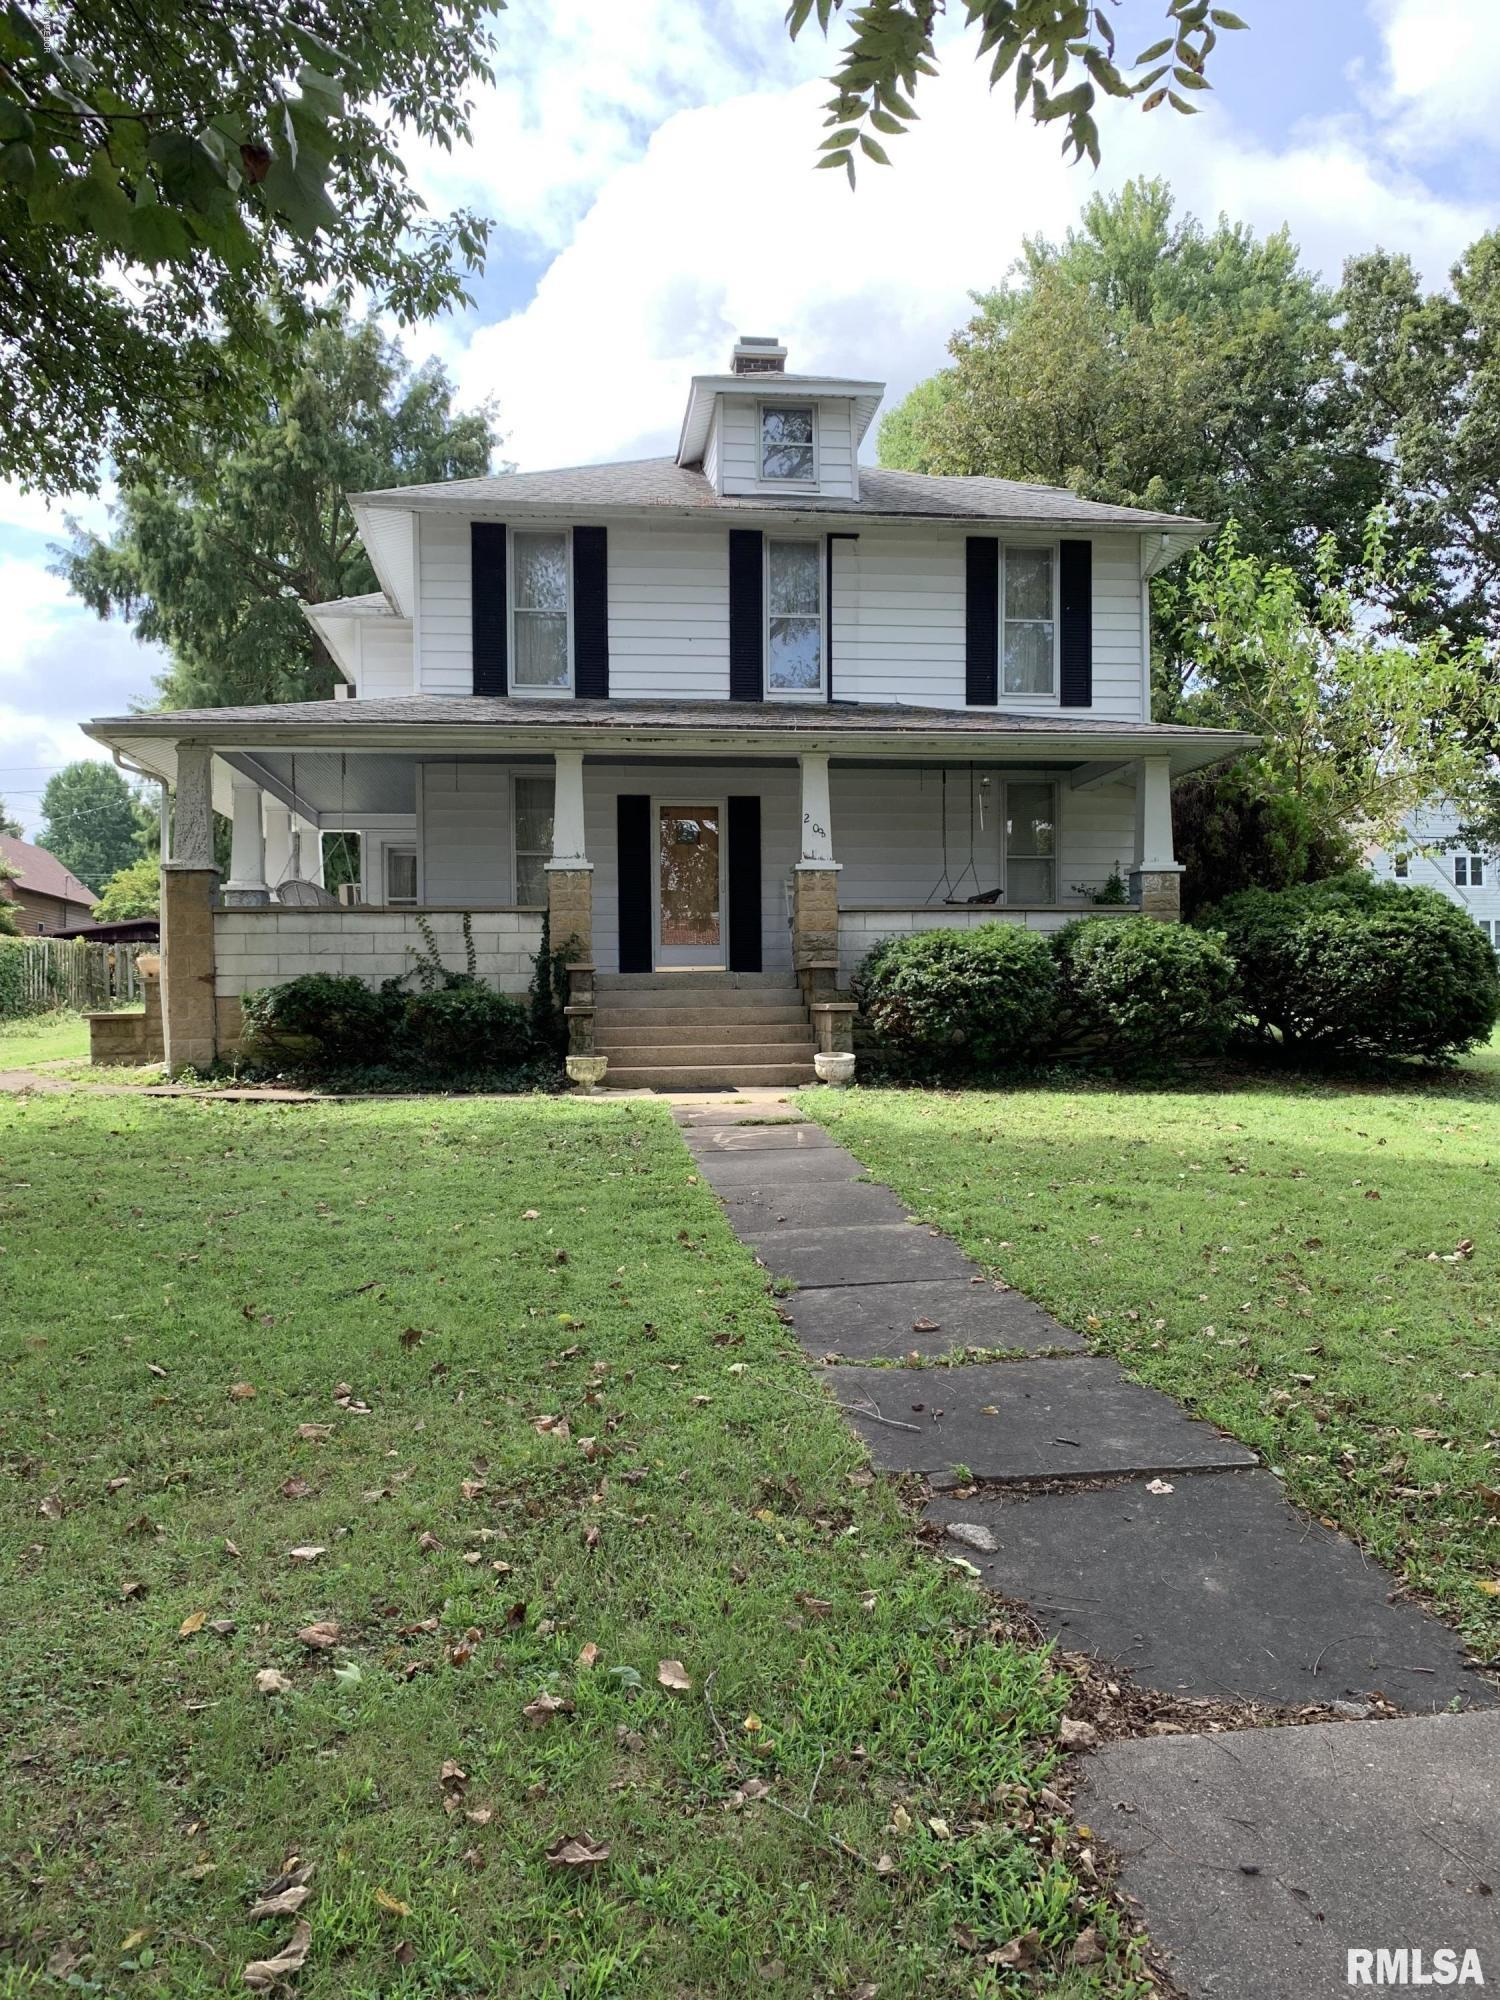 208 W MULBERRY Property Photo - Pinckneyville, IL real estate listing